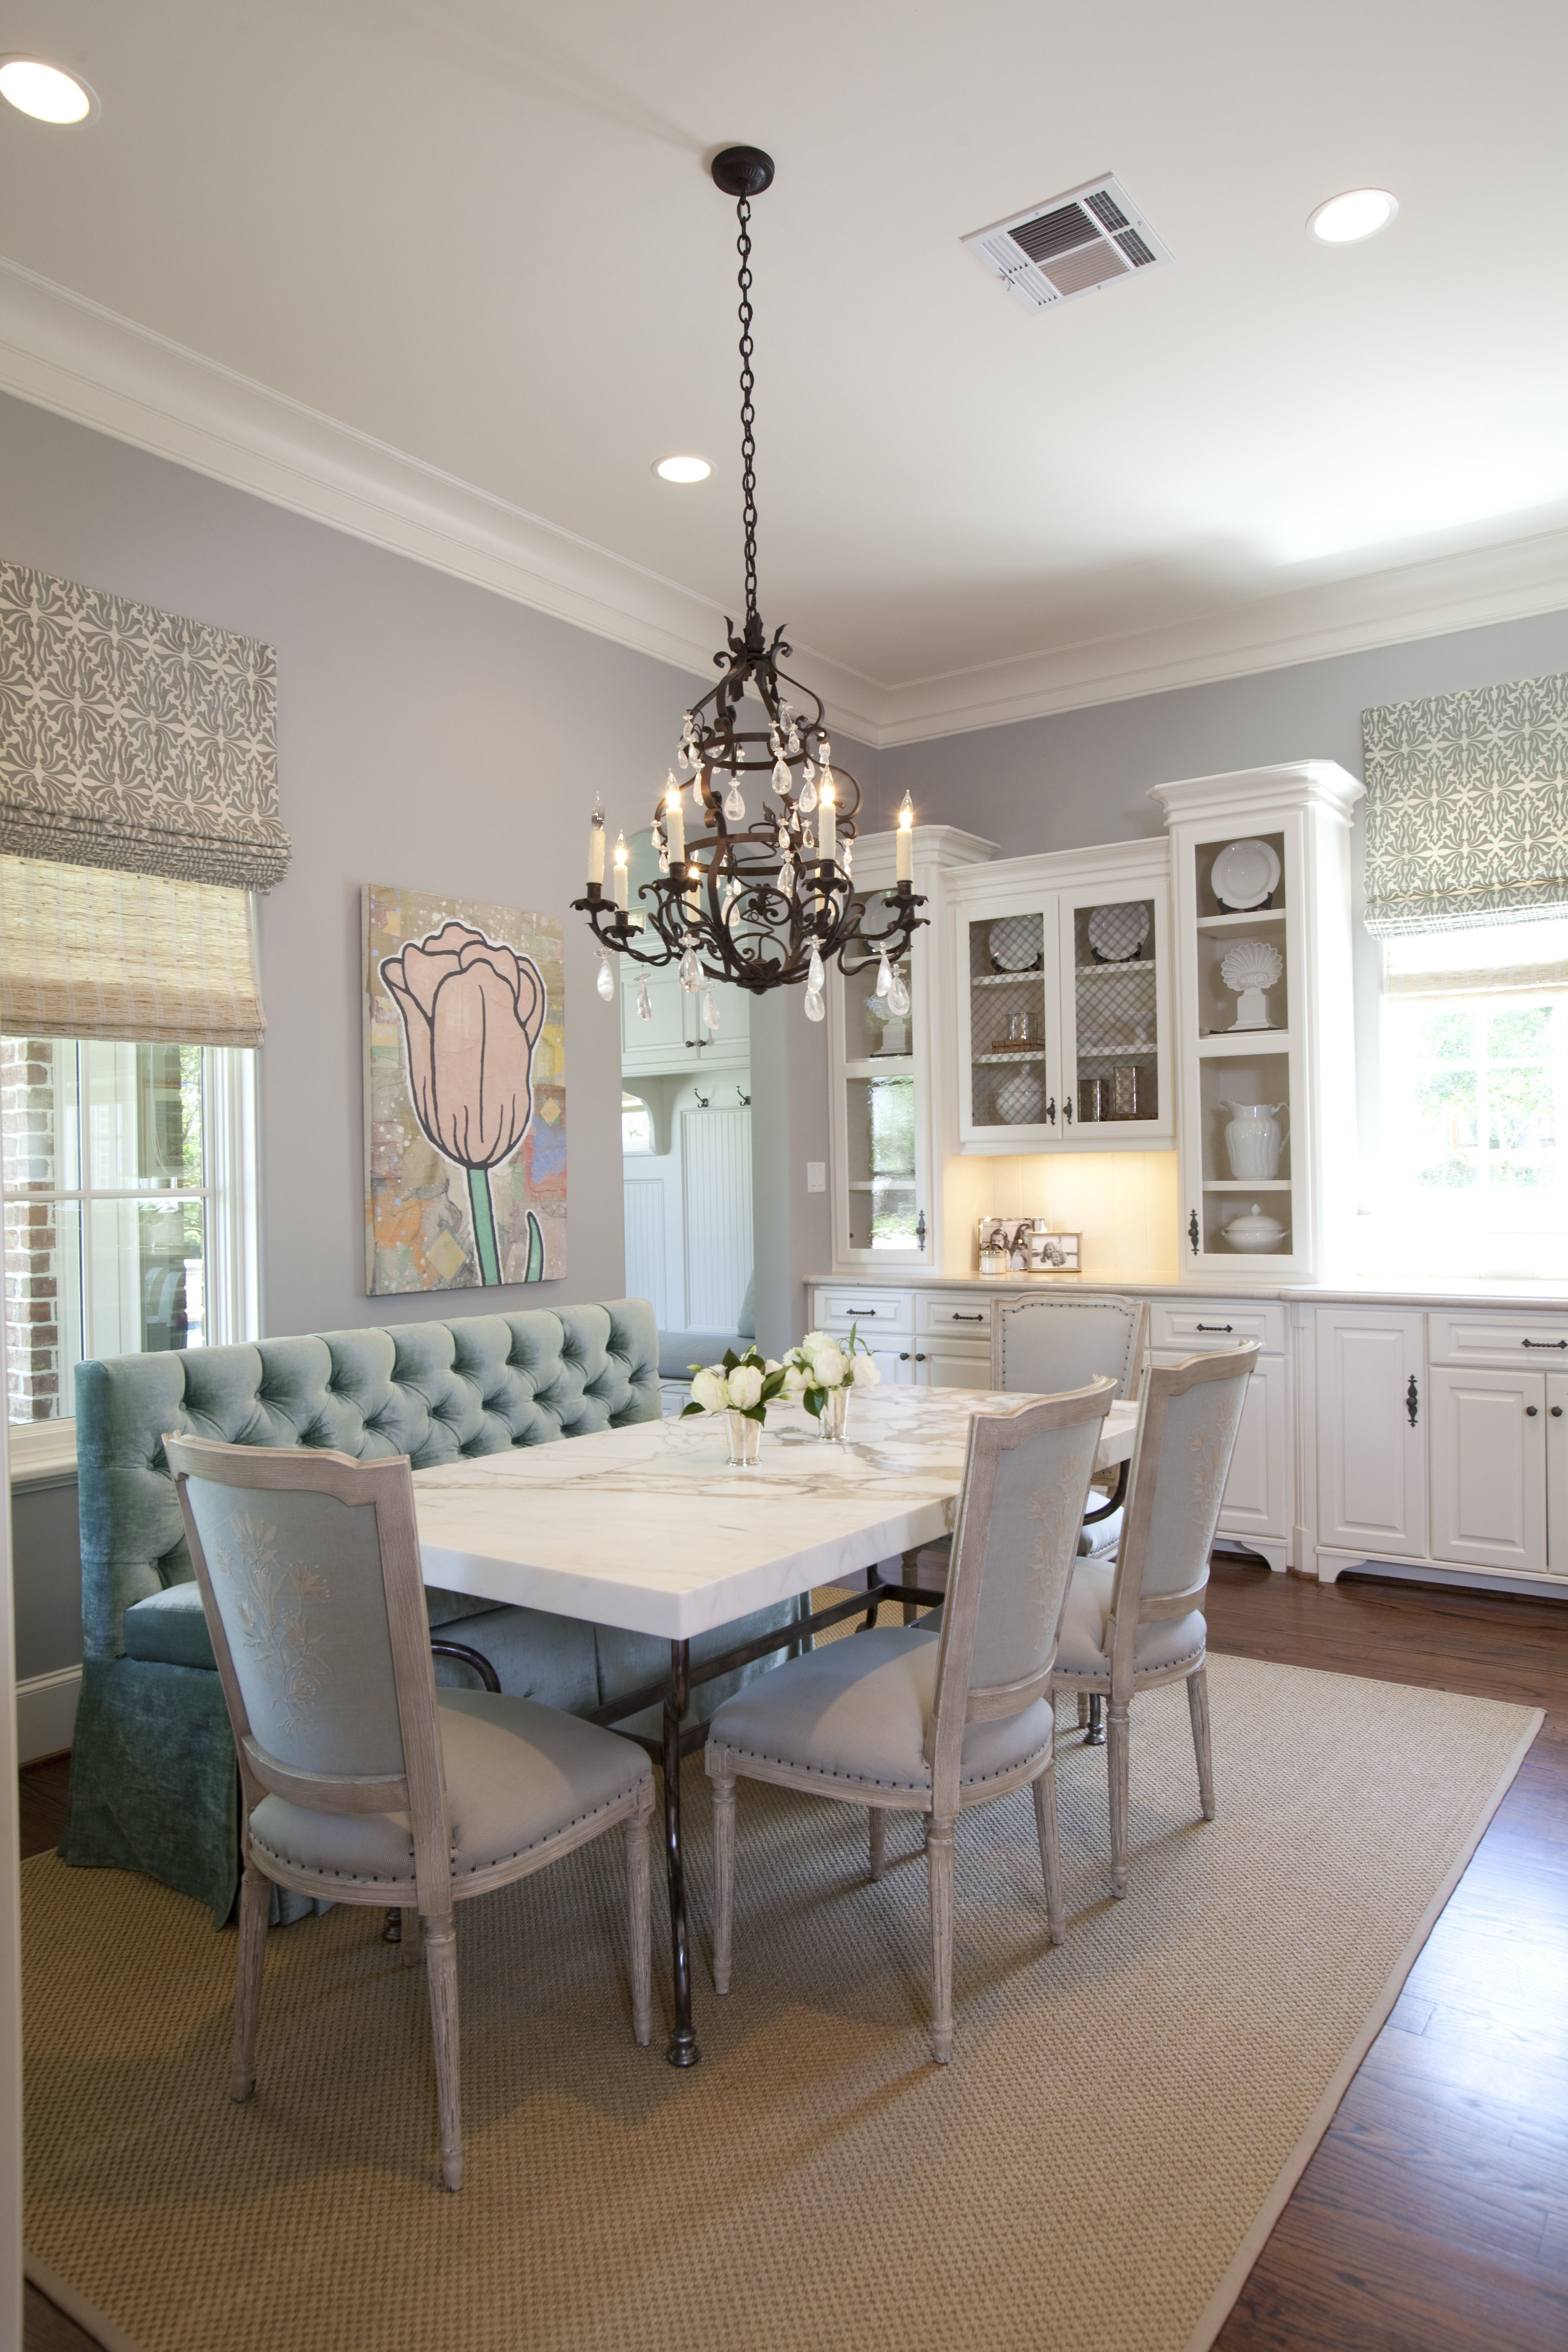 15 Dining Spaces With Banquette Bench Seating Dining Room Banquette Dining Room Bench Beautiful Dining Rooms